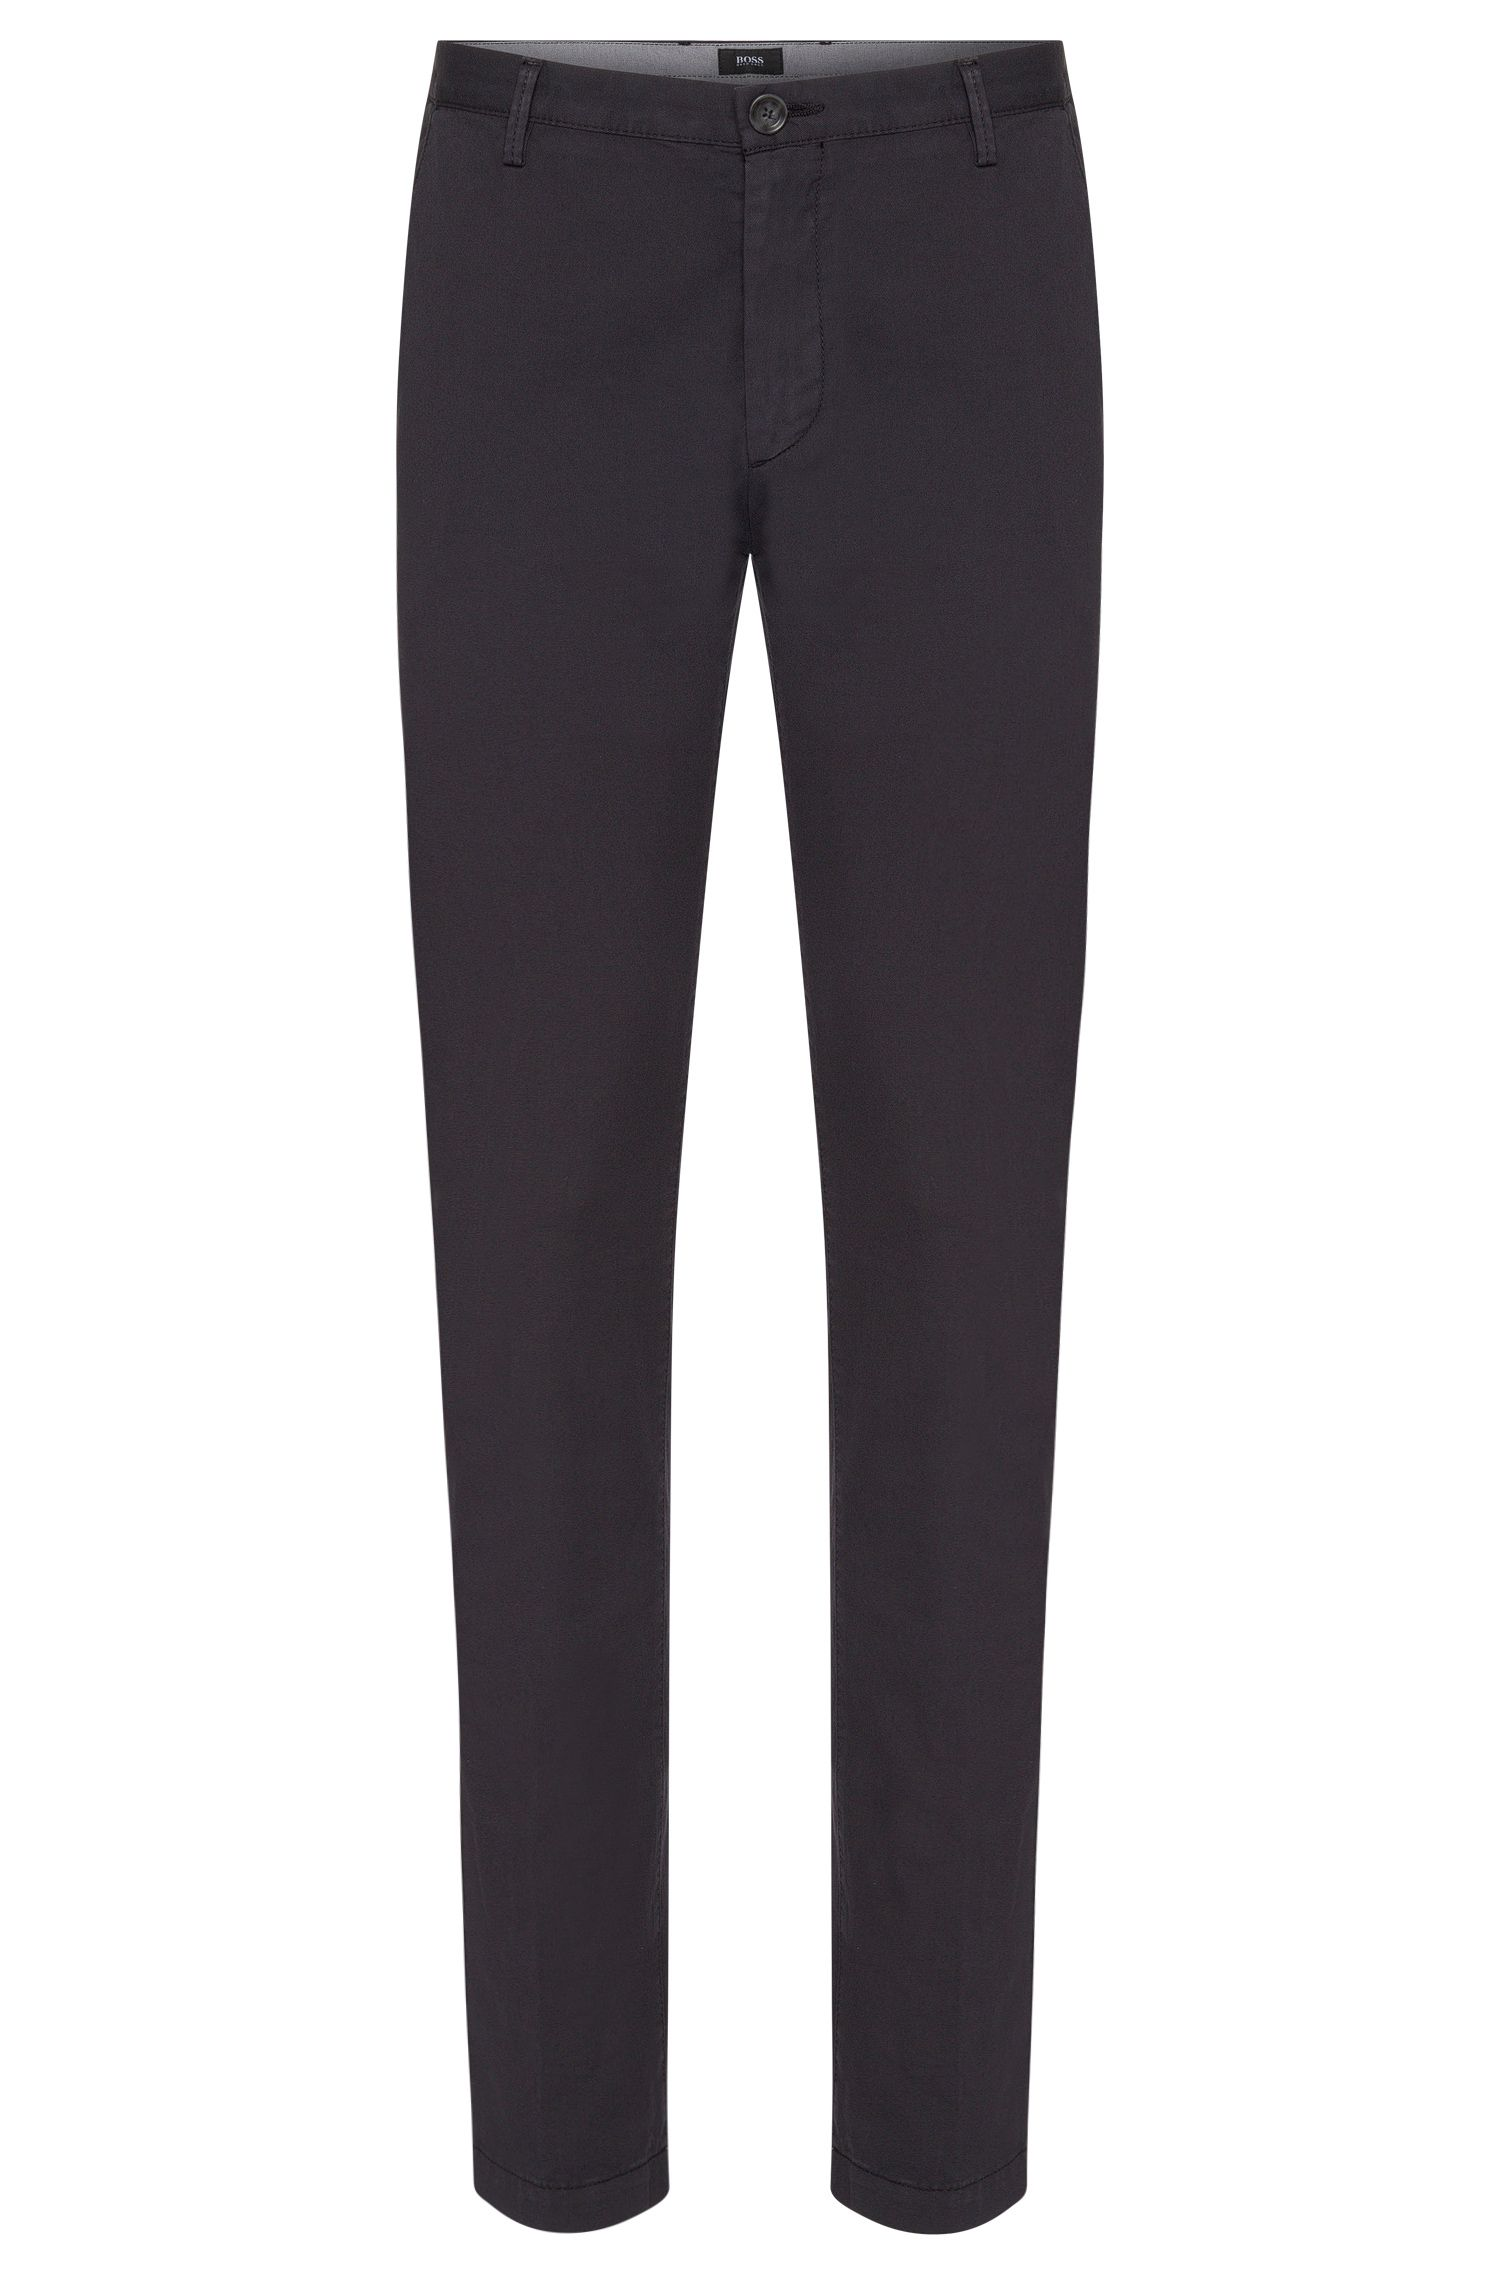 'Rice-D' | Slim Fit, Stretch Cotton Gabardine Trousers